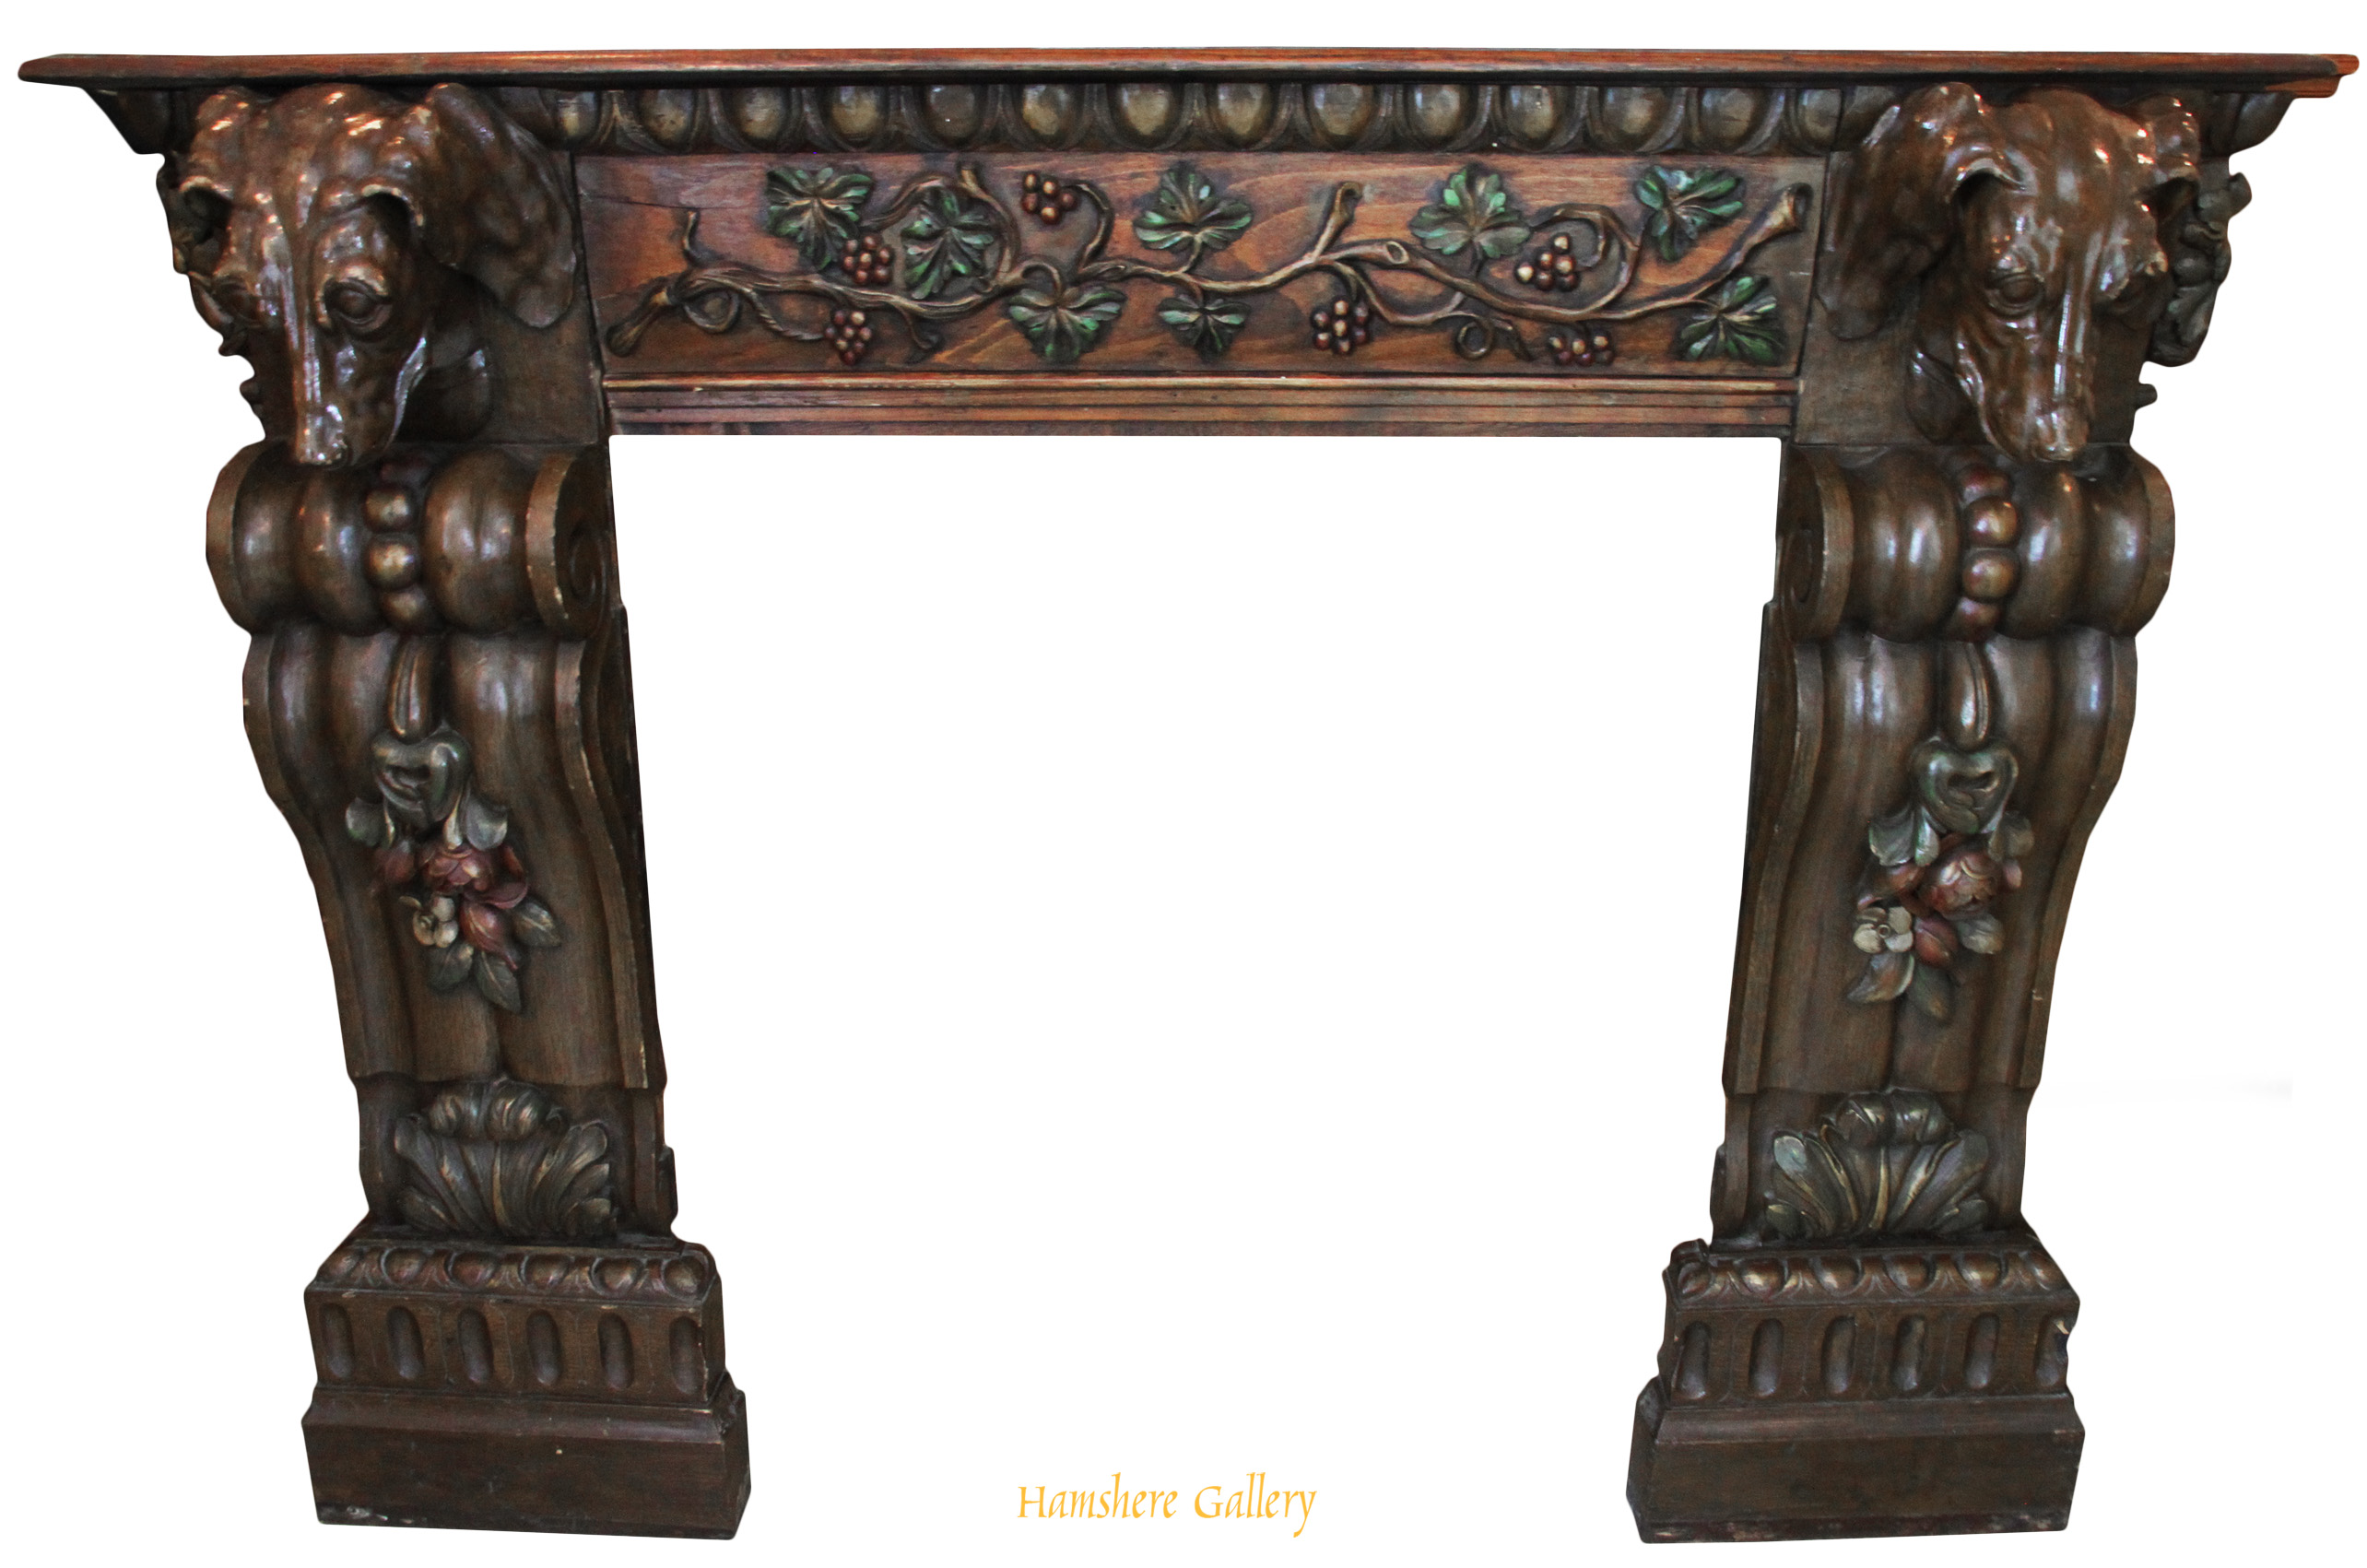 Click to see full size: A rare and fine French early 20th century white oak carved Setter fireplace / chimneypiece / mantelpiece - A rare and fine French early 20th century white oak carved Setter fireplace / chimneypiece / mantelpiece